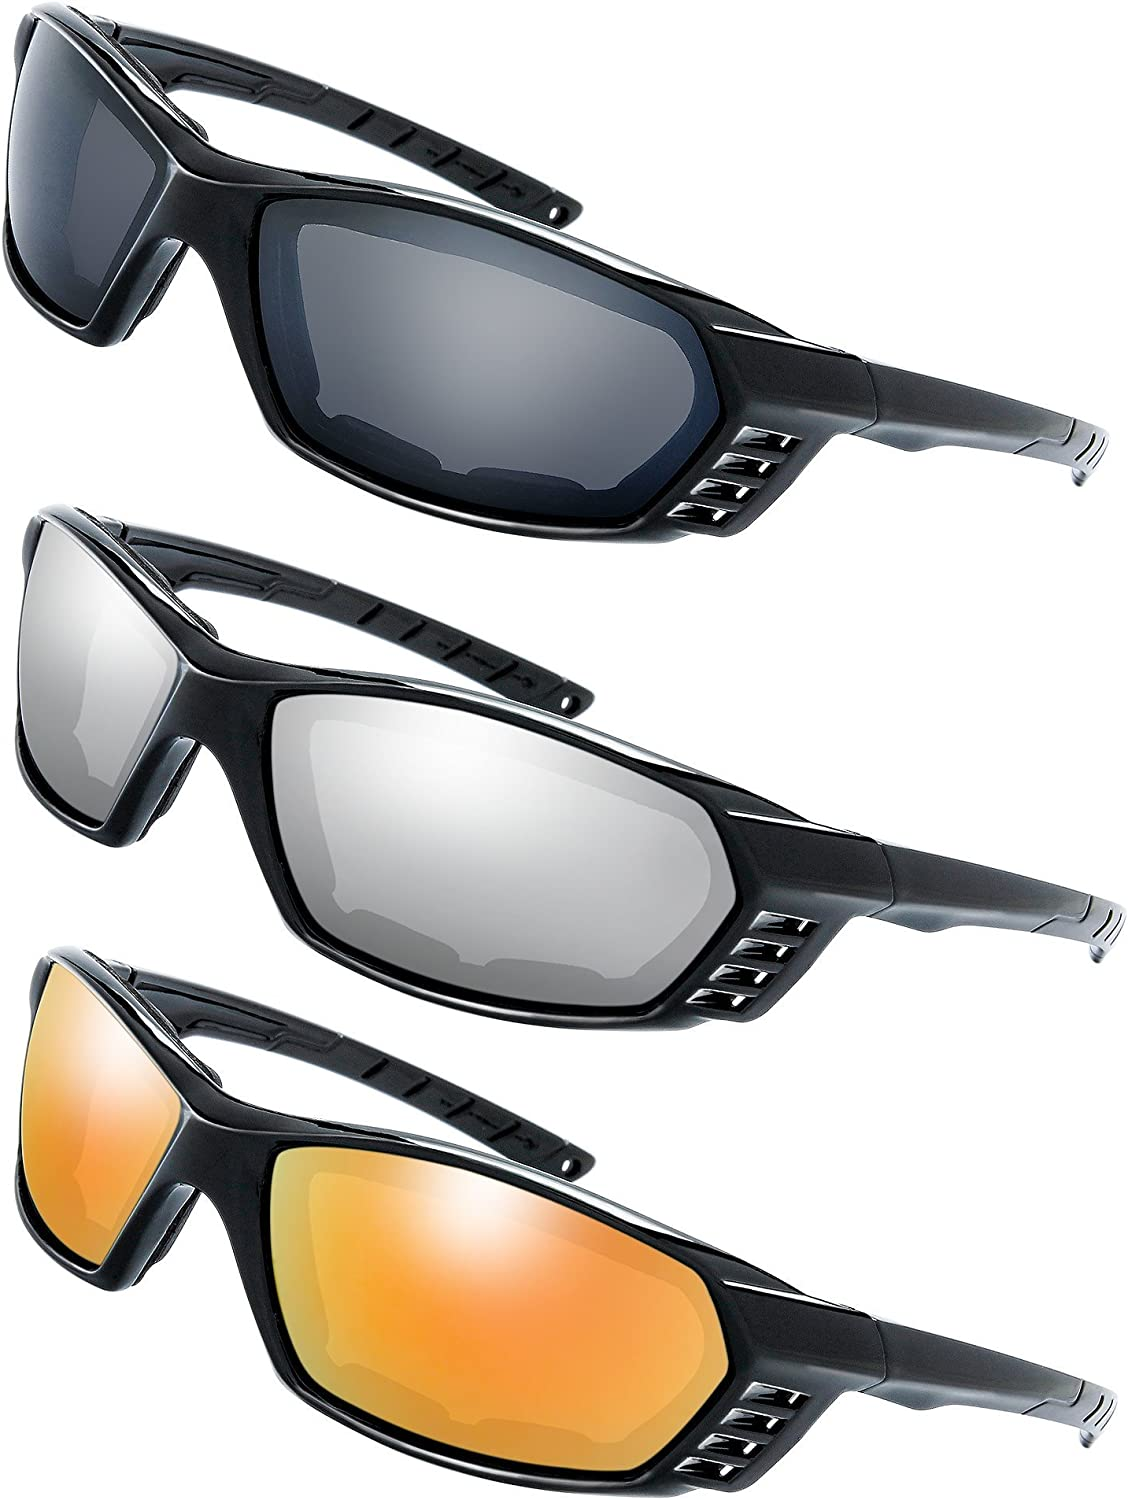 Cycling//Sports Sunglasses Mirrored//Smoke Lenses Full UV Protection Free Case